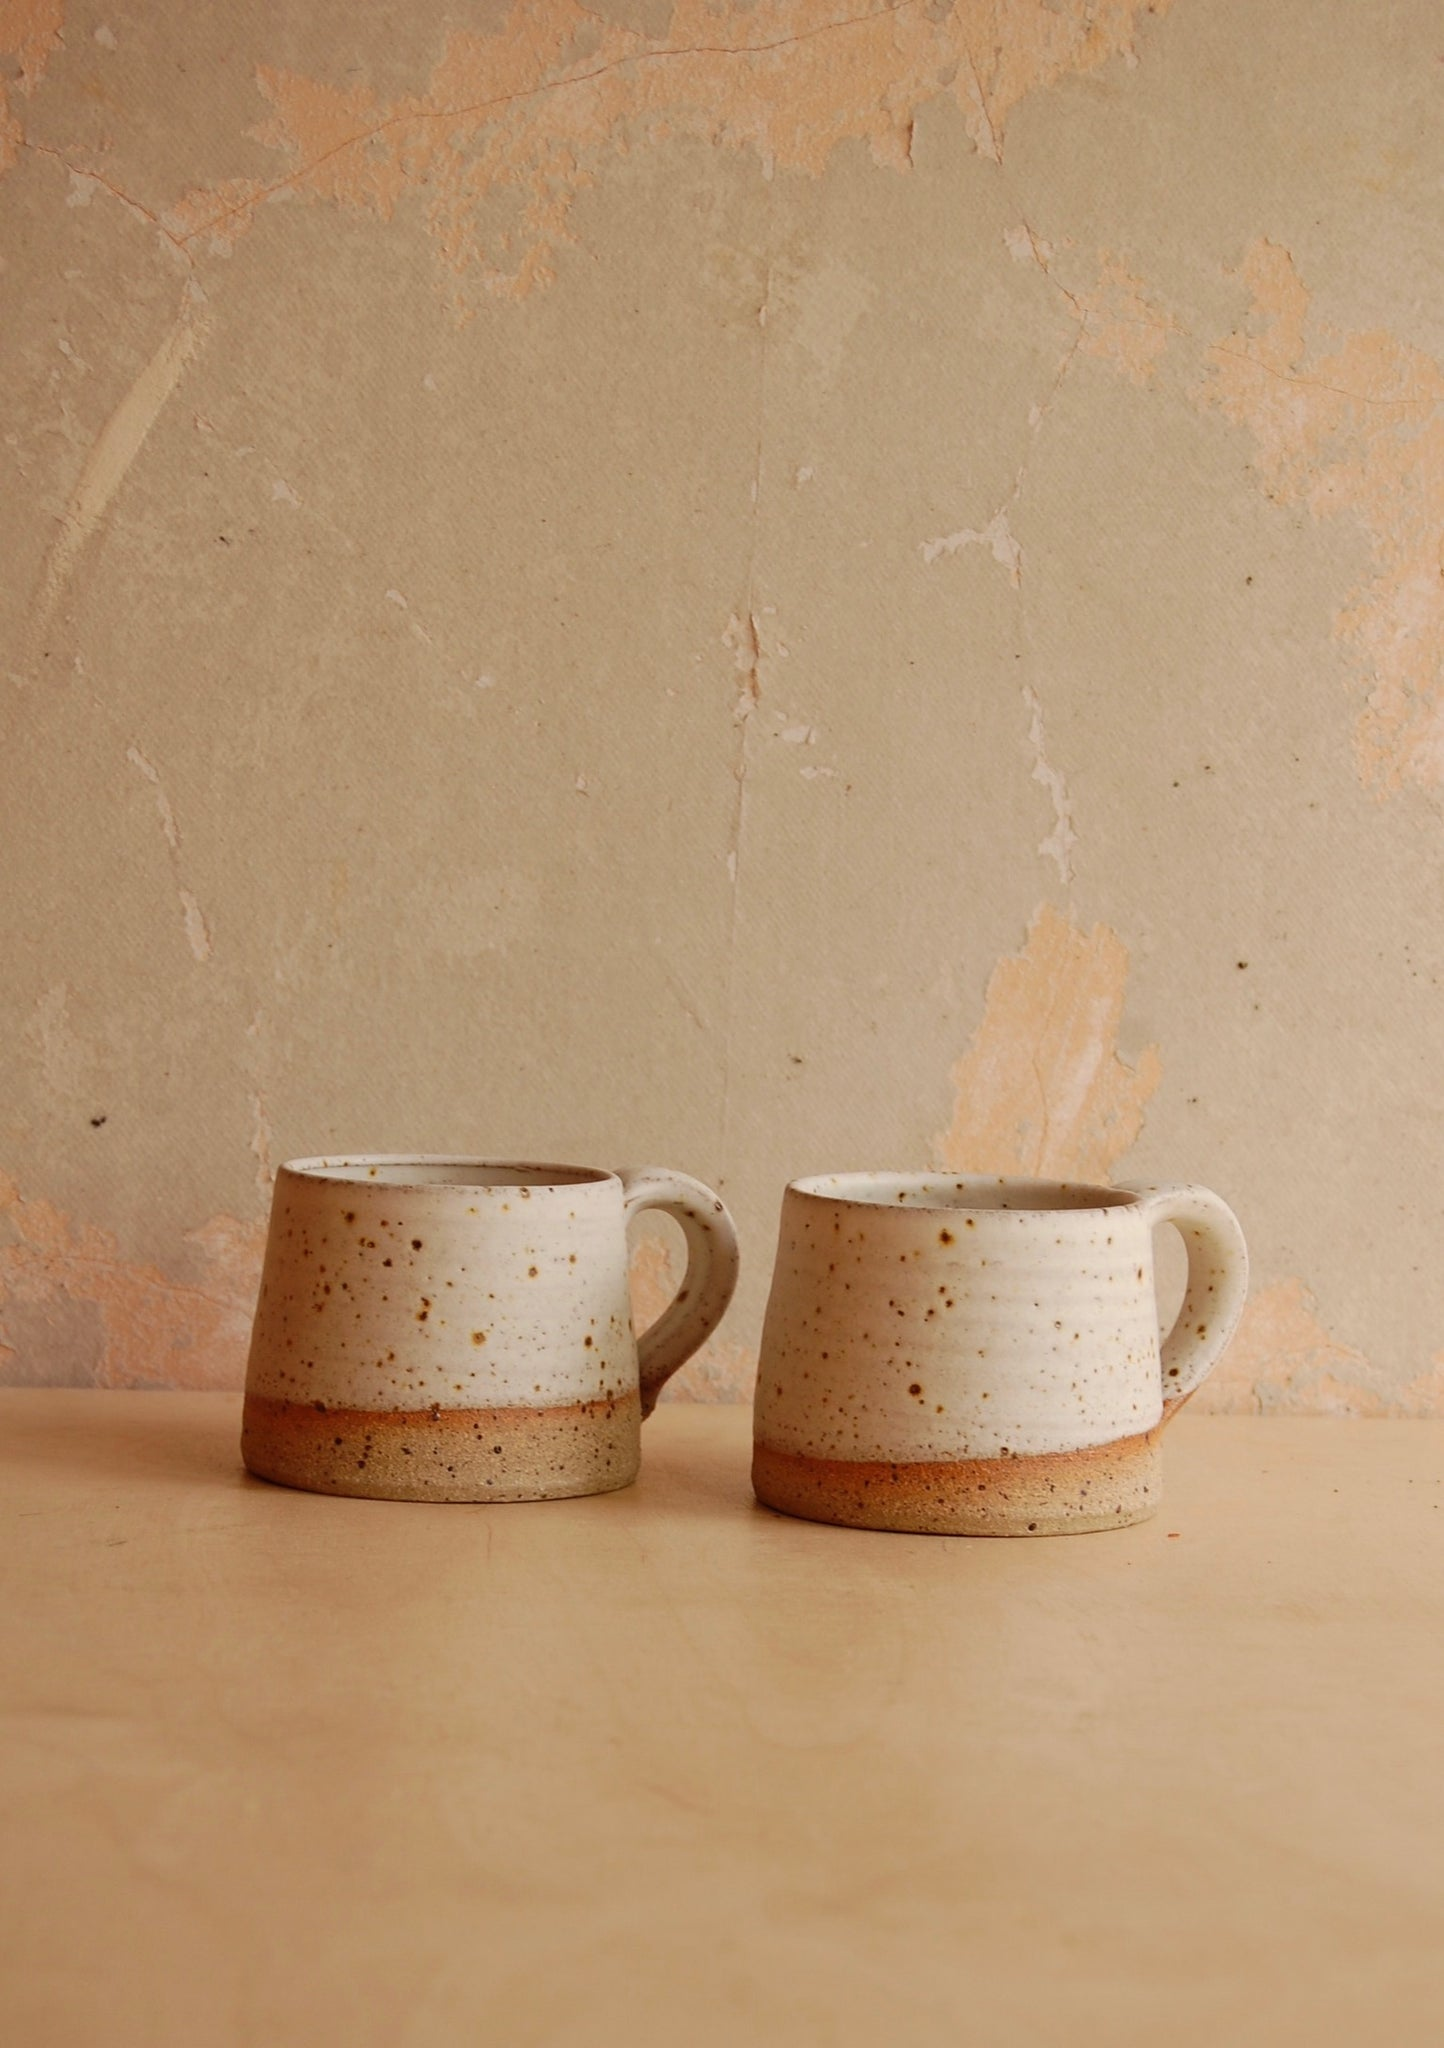 Pair of oatmeal stoneware mugs